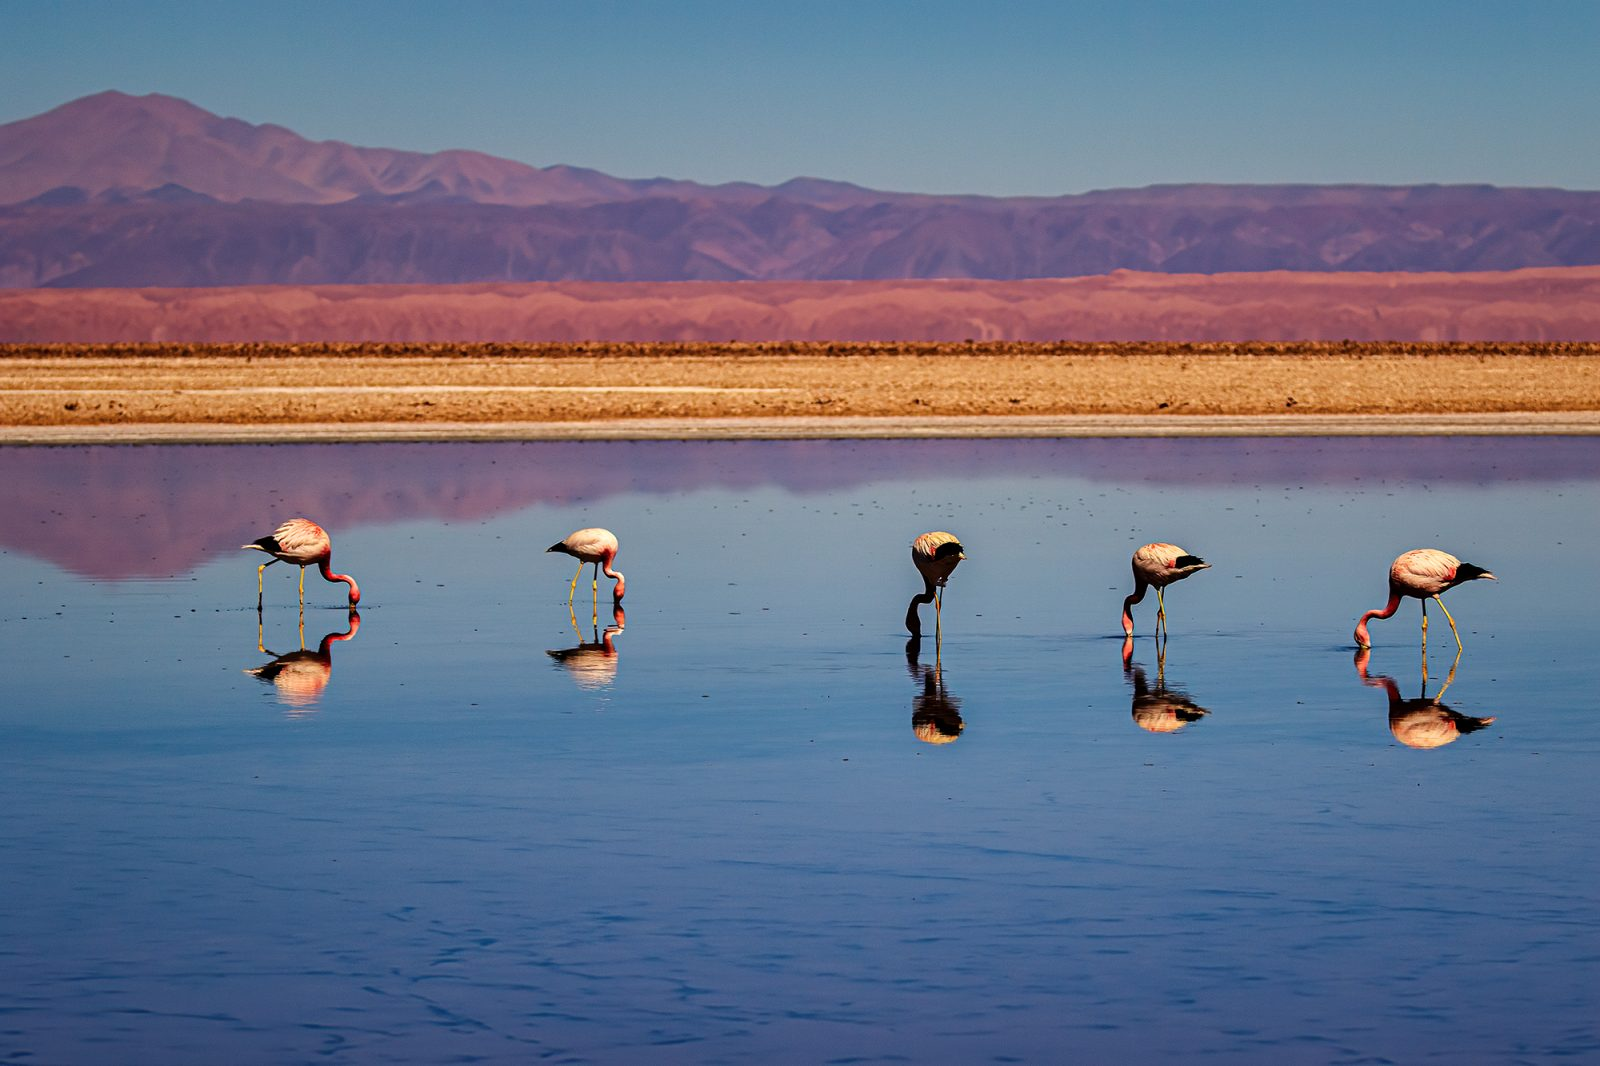 Andean landscape and flamingos